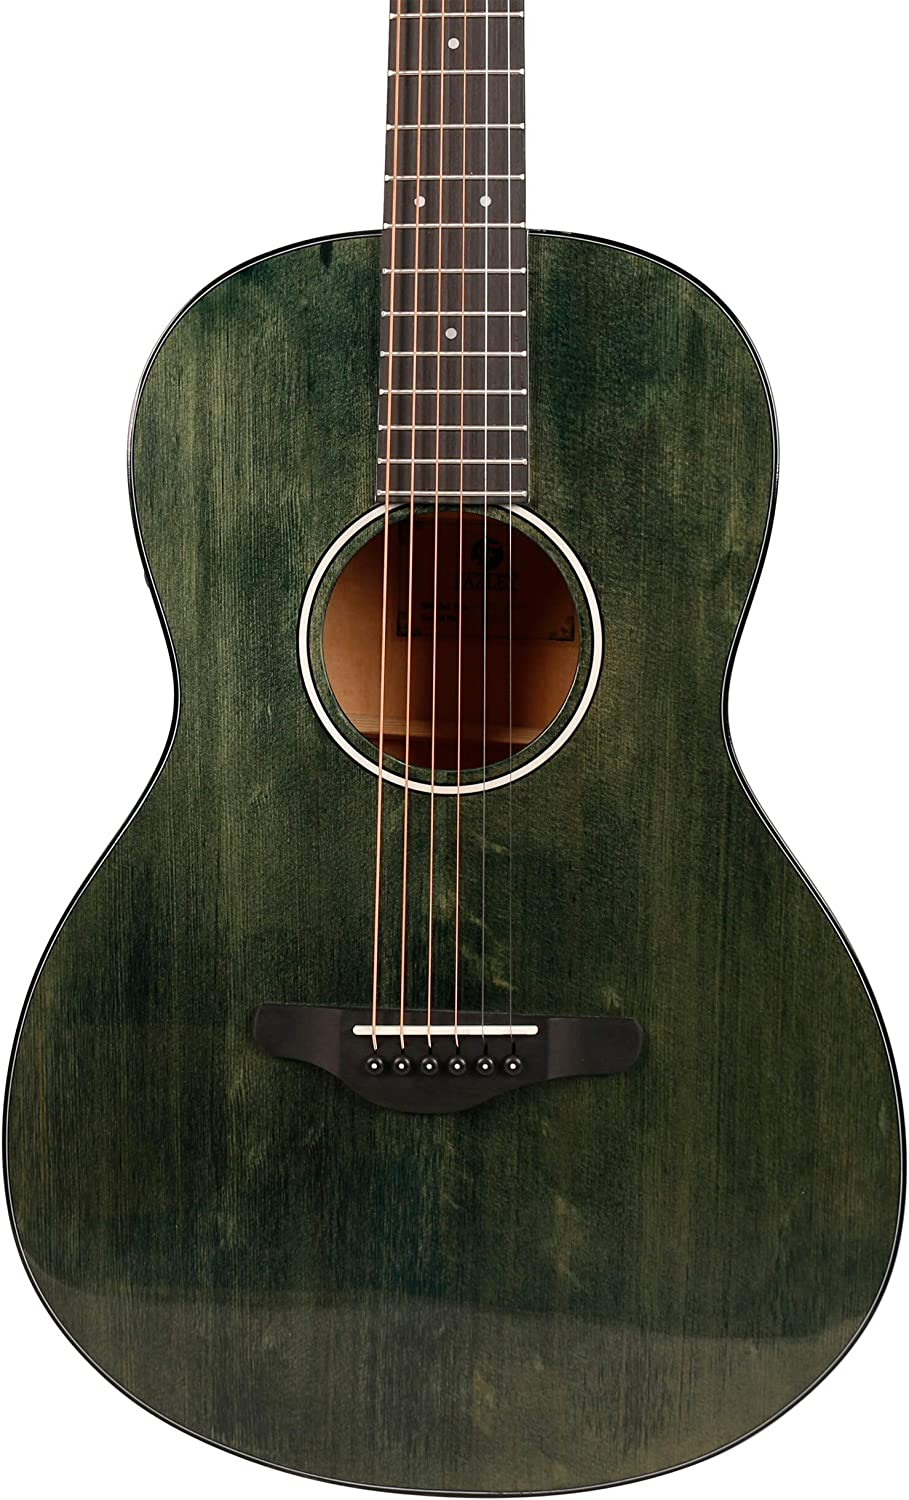 Fazley W120-PGR-P ColourTune Electro-Acoustic Guitar with Gig Bag Green